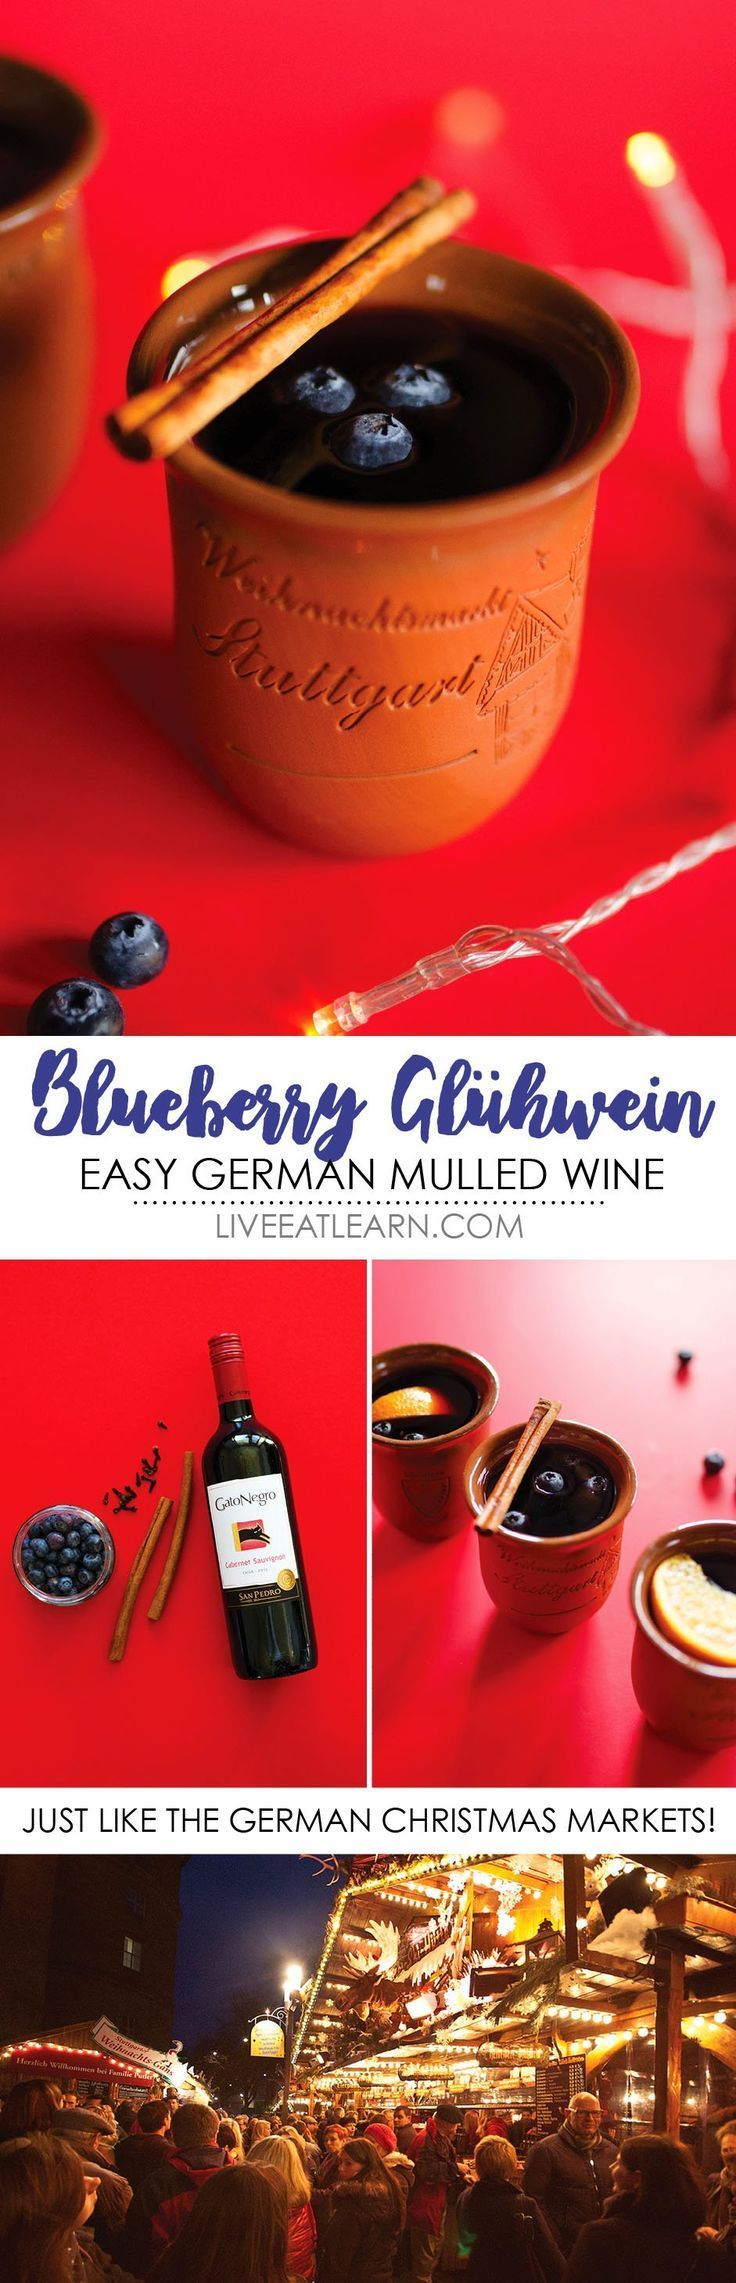 Blueberry Gluhwein Recipe Recipe Gluhwein Recipe Gluhwein German Christmas Markets